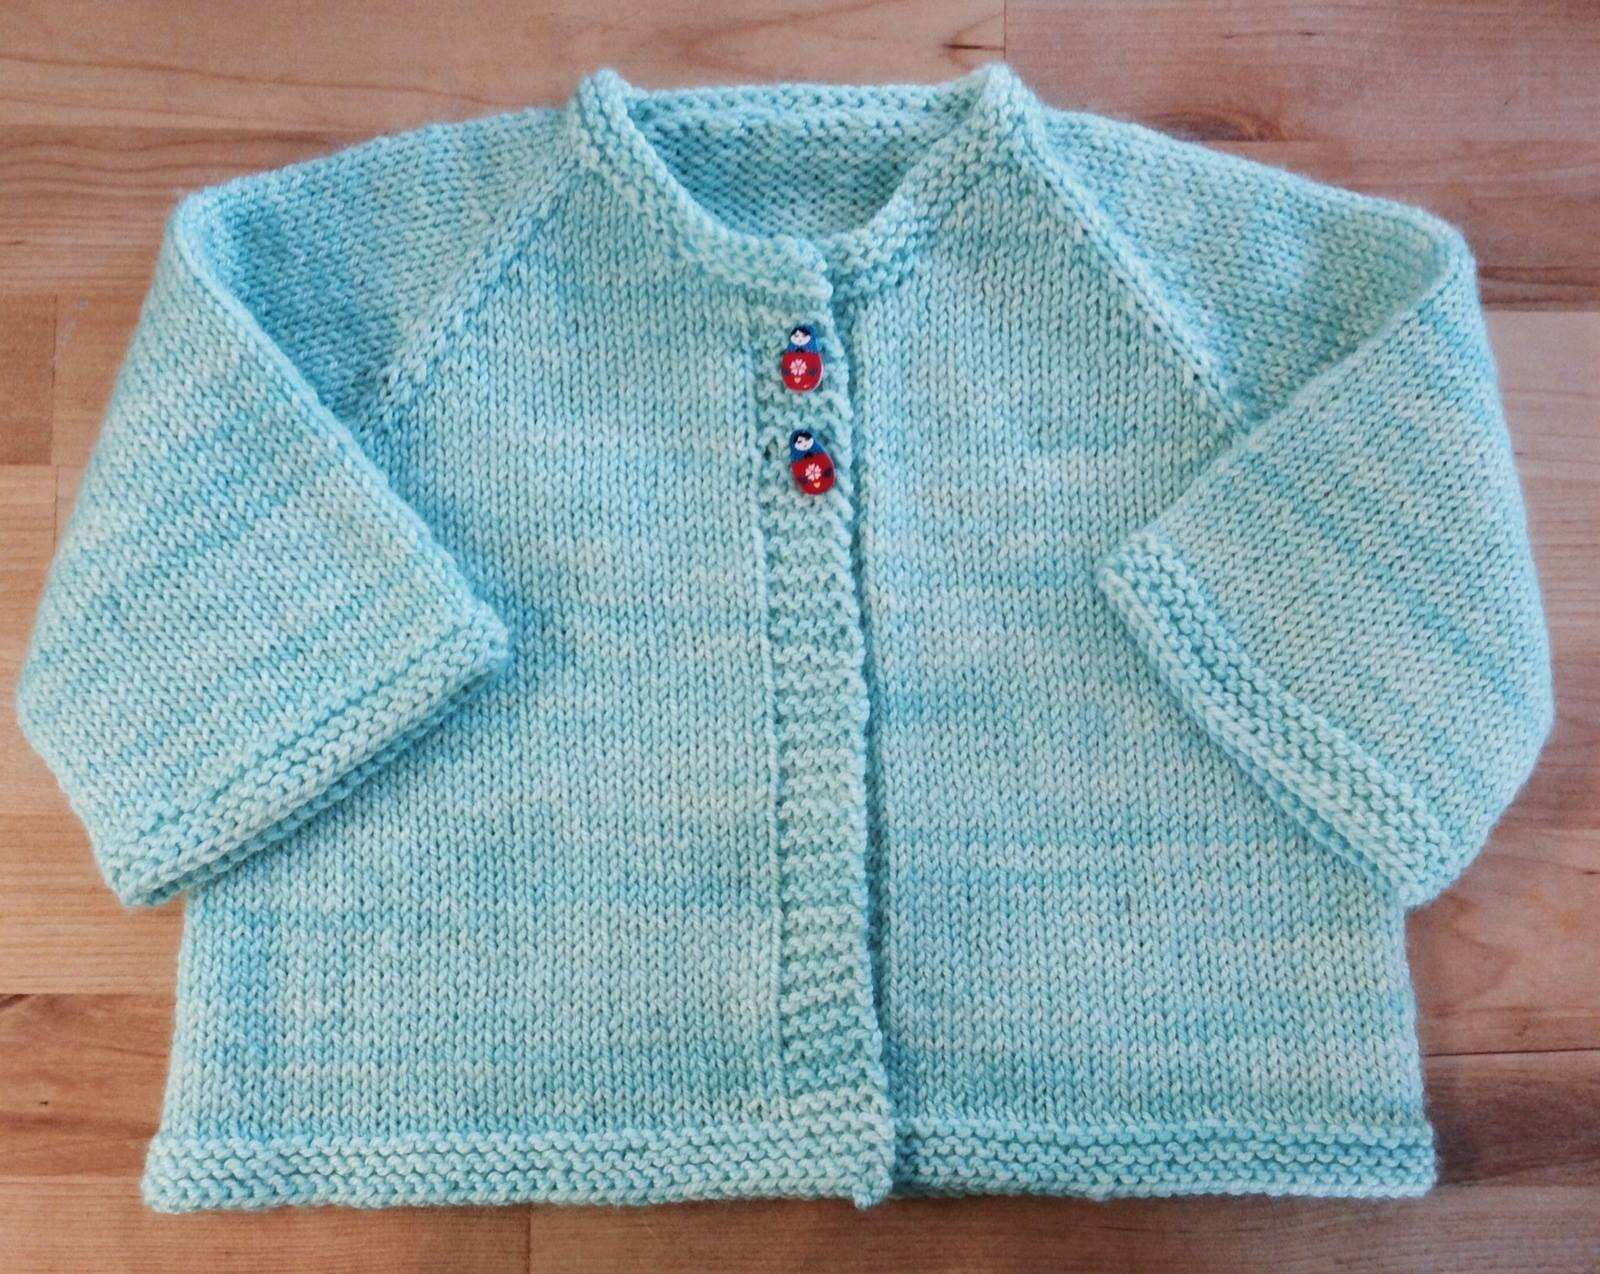 Learn to Knit a Sweater with the Cradle Cardigan